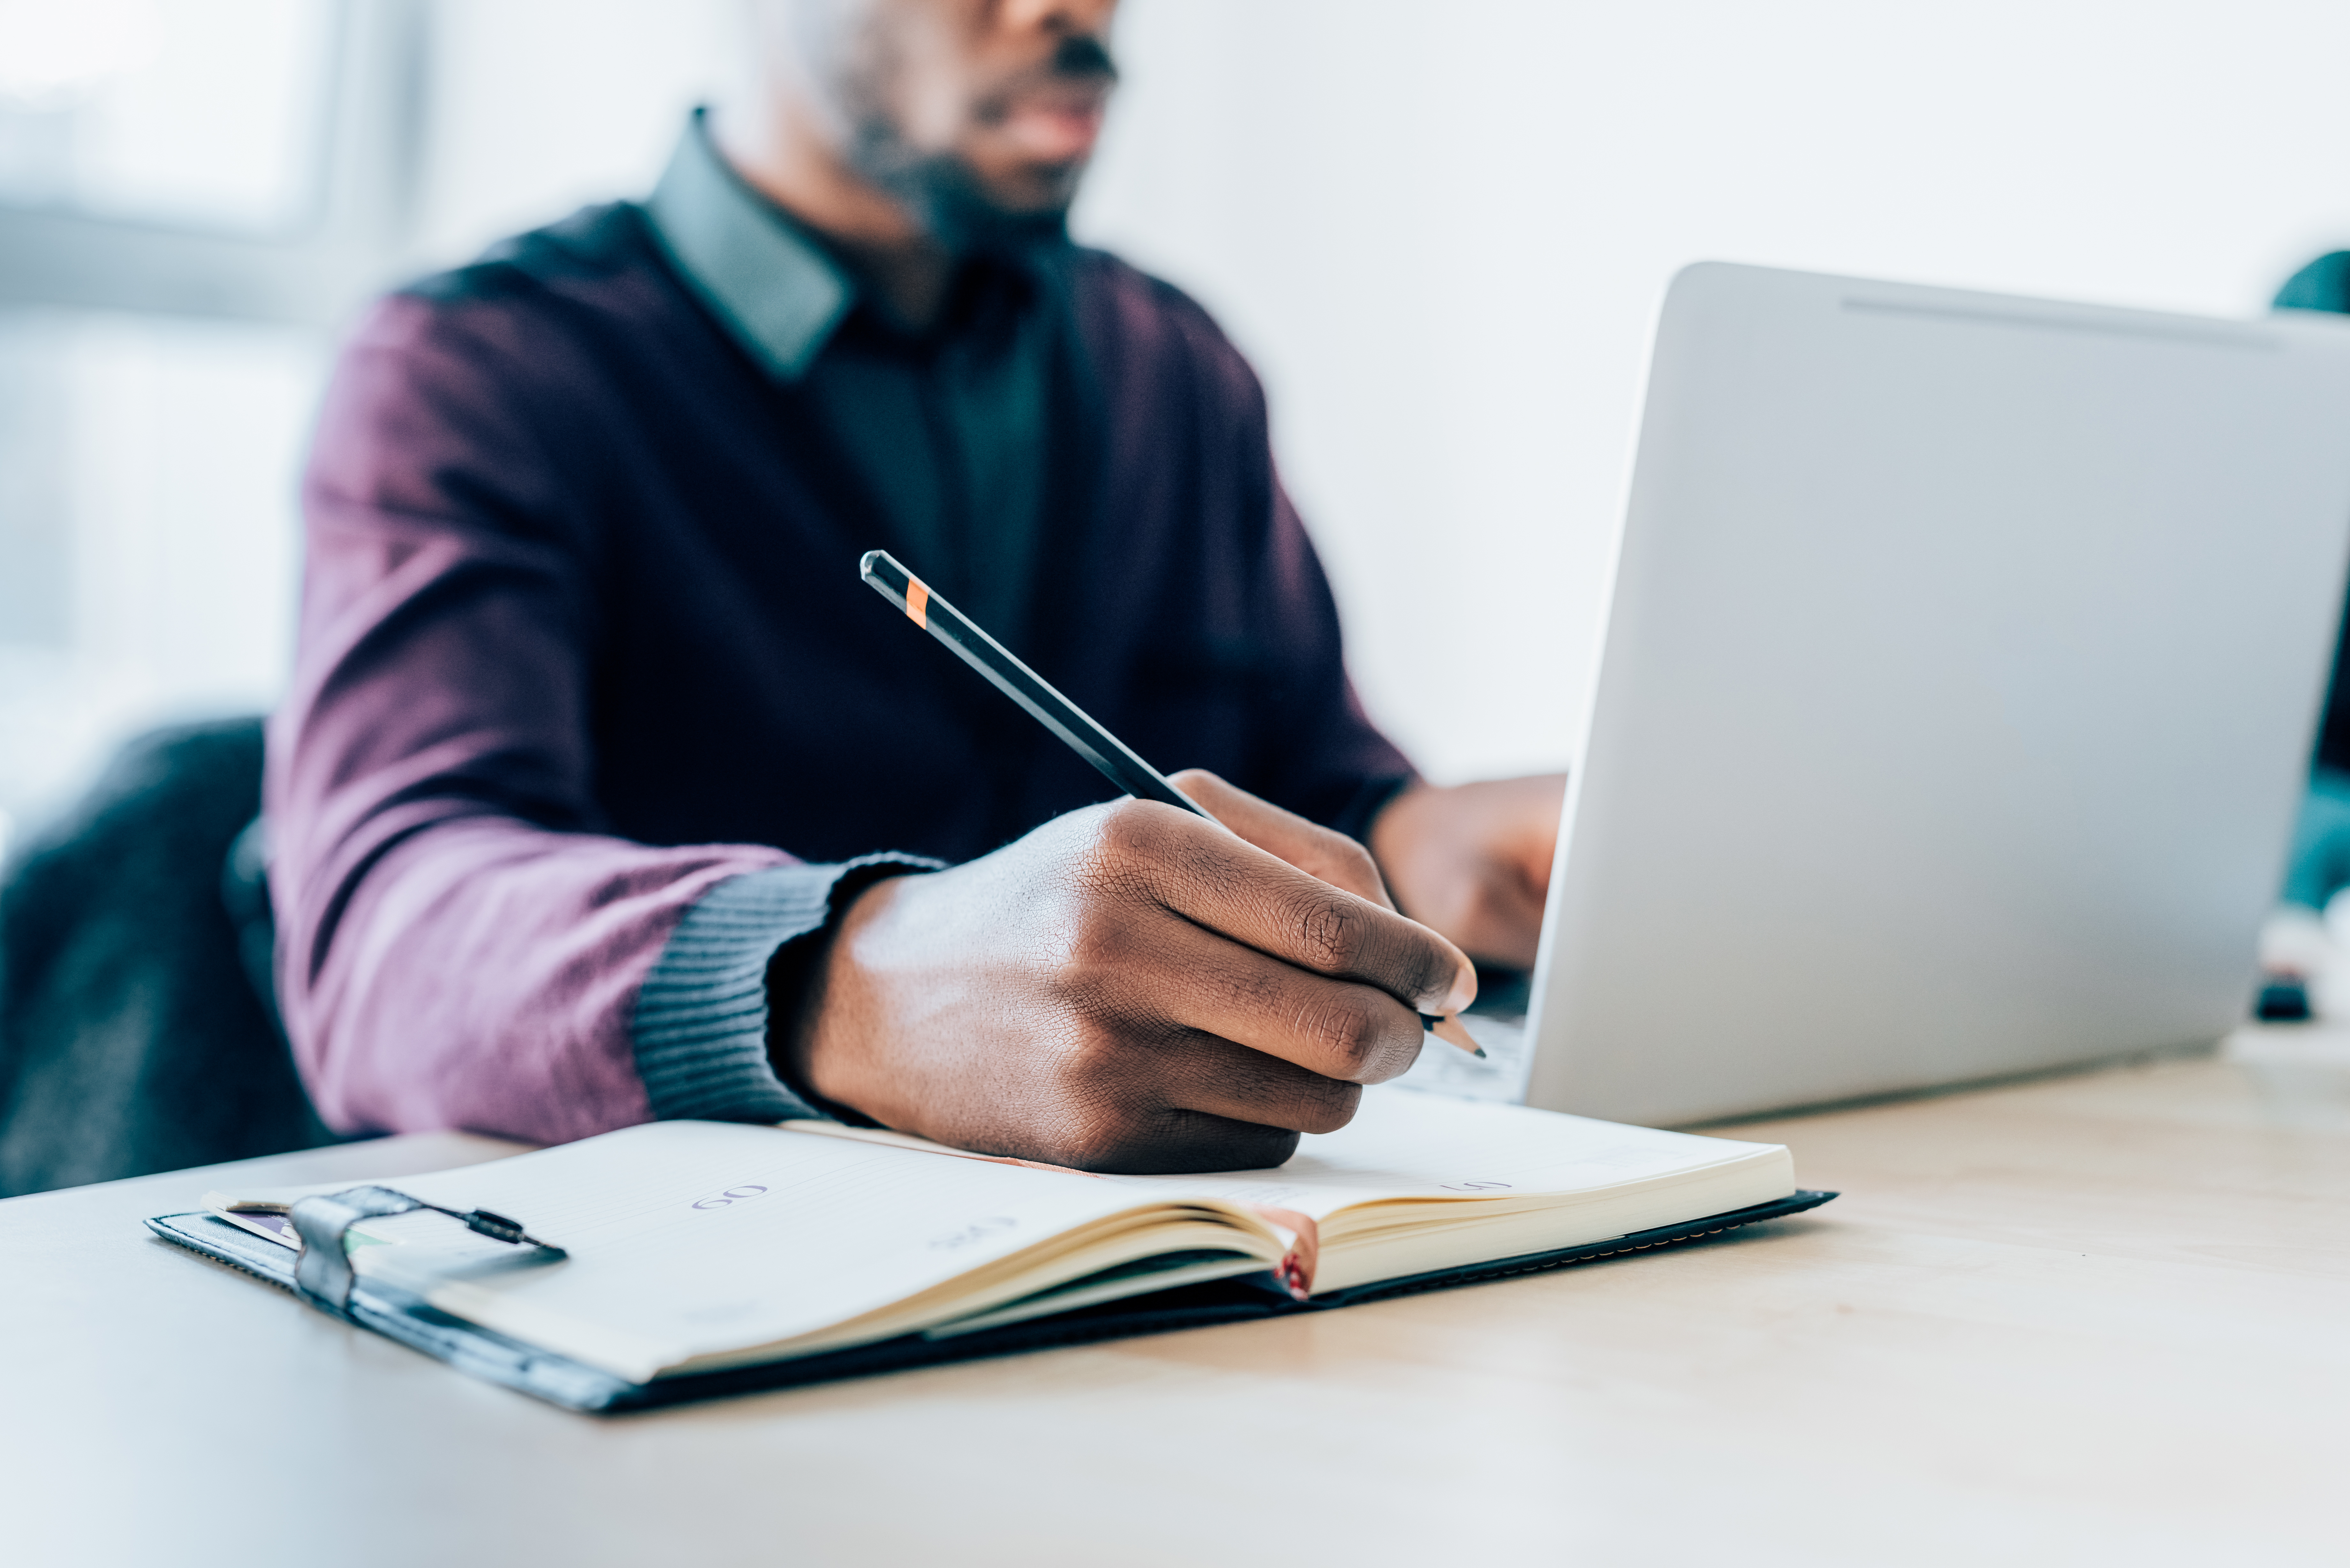 Person writing in notebook while working on laptop in office